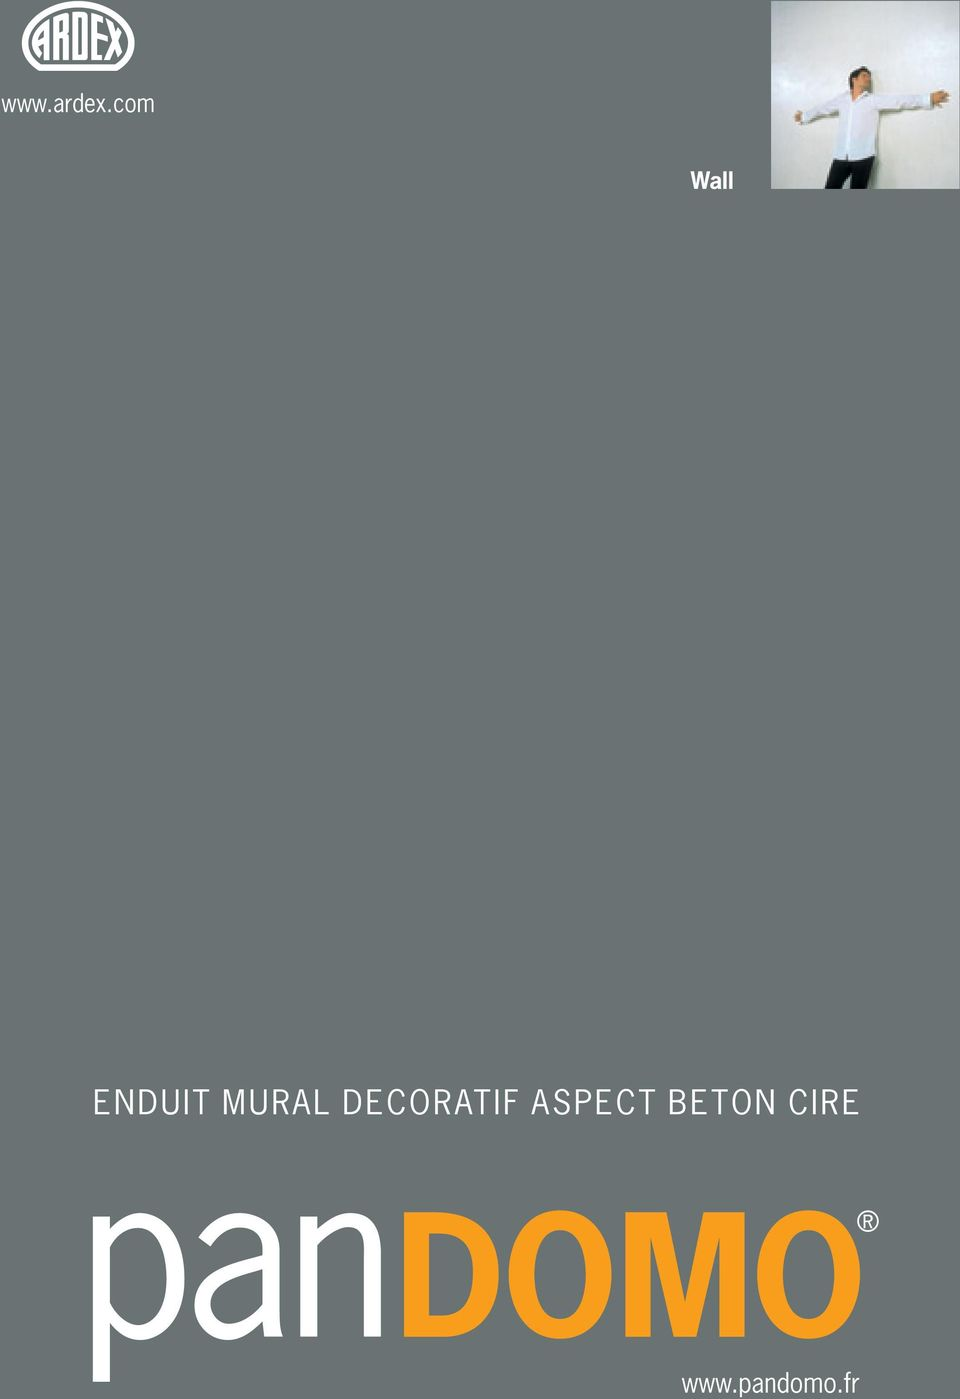 enduit mural decoratif aspect beton cire pdf. Black Bedroom Furniture Sets. Home Design Ideas